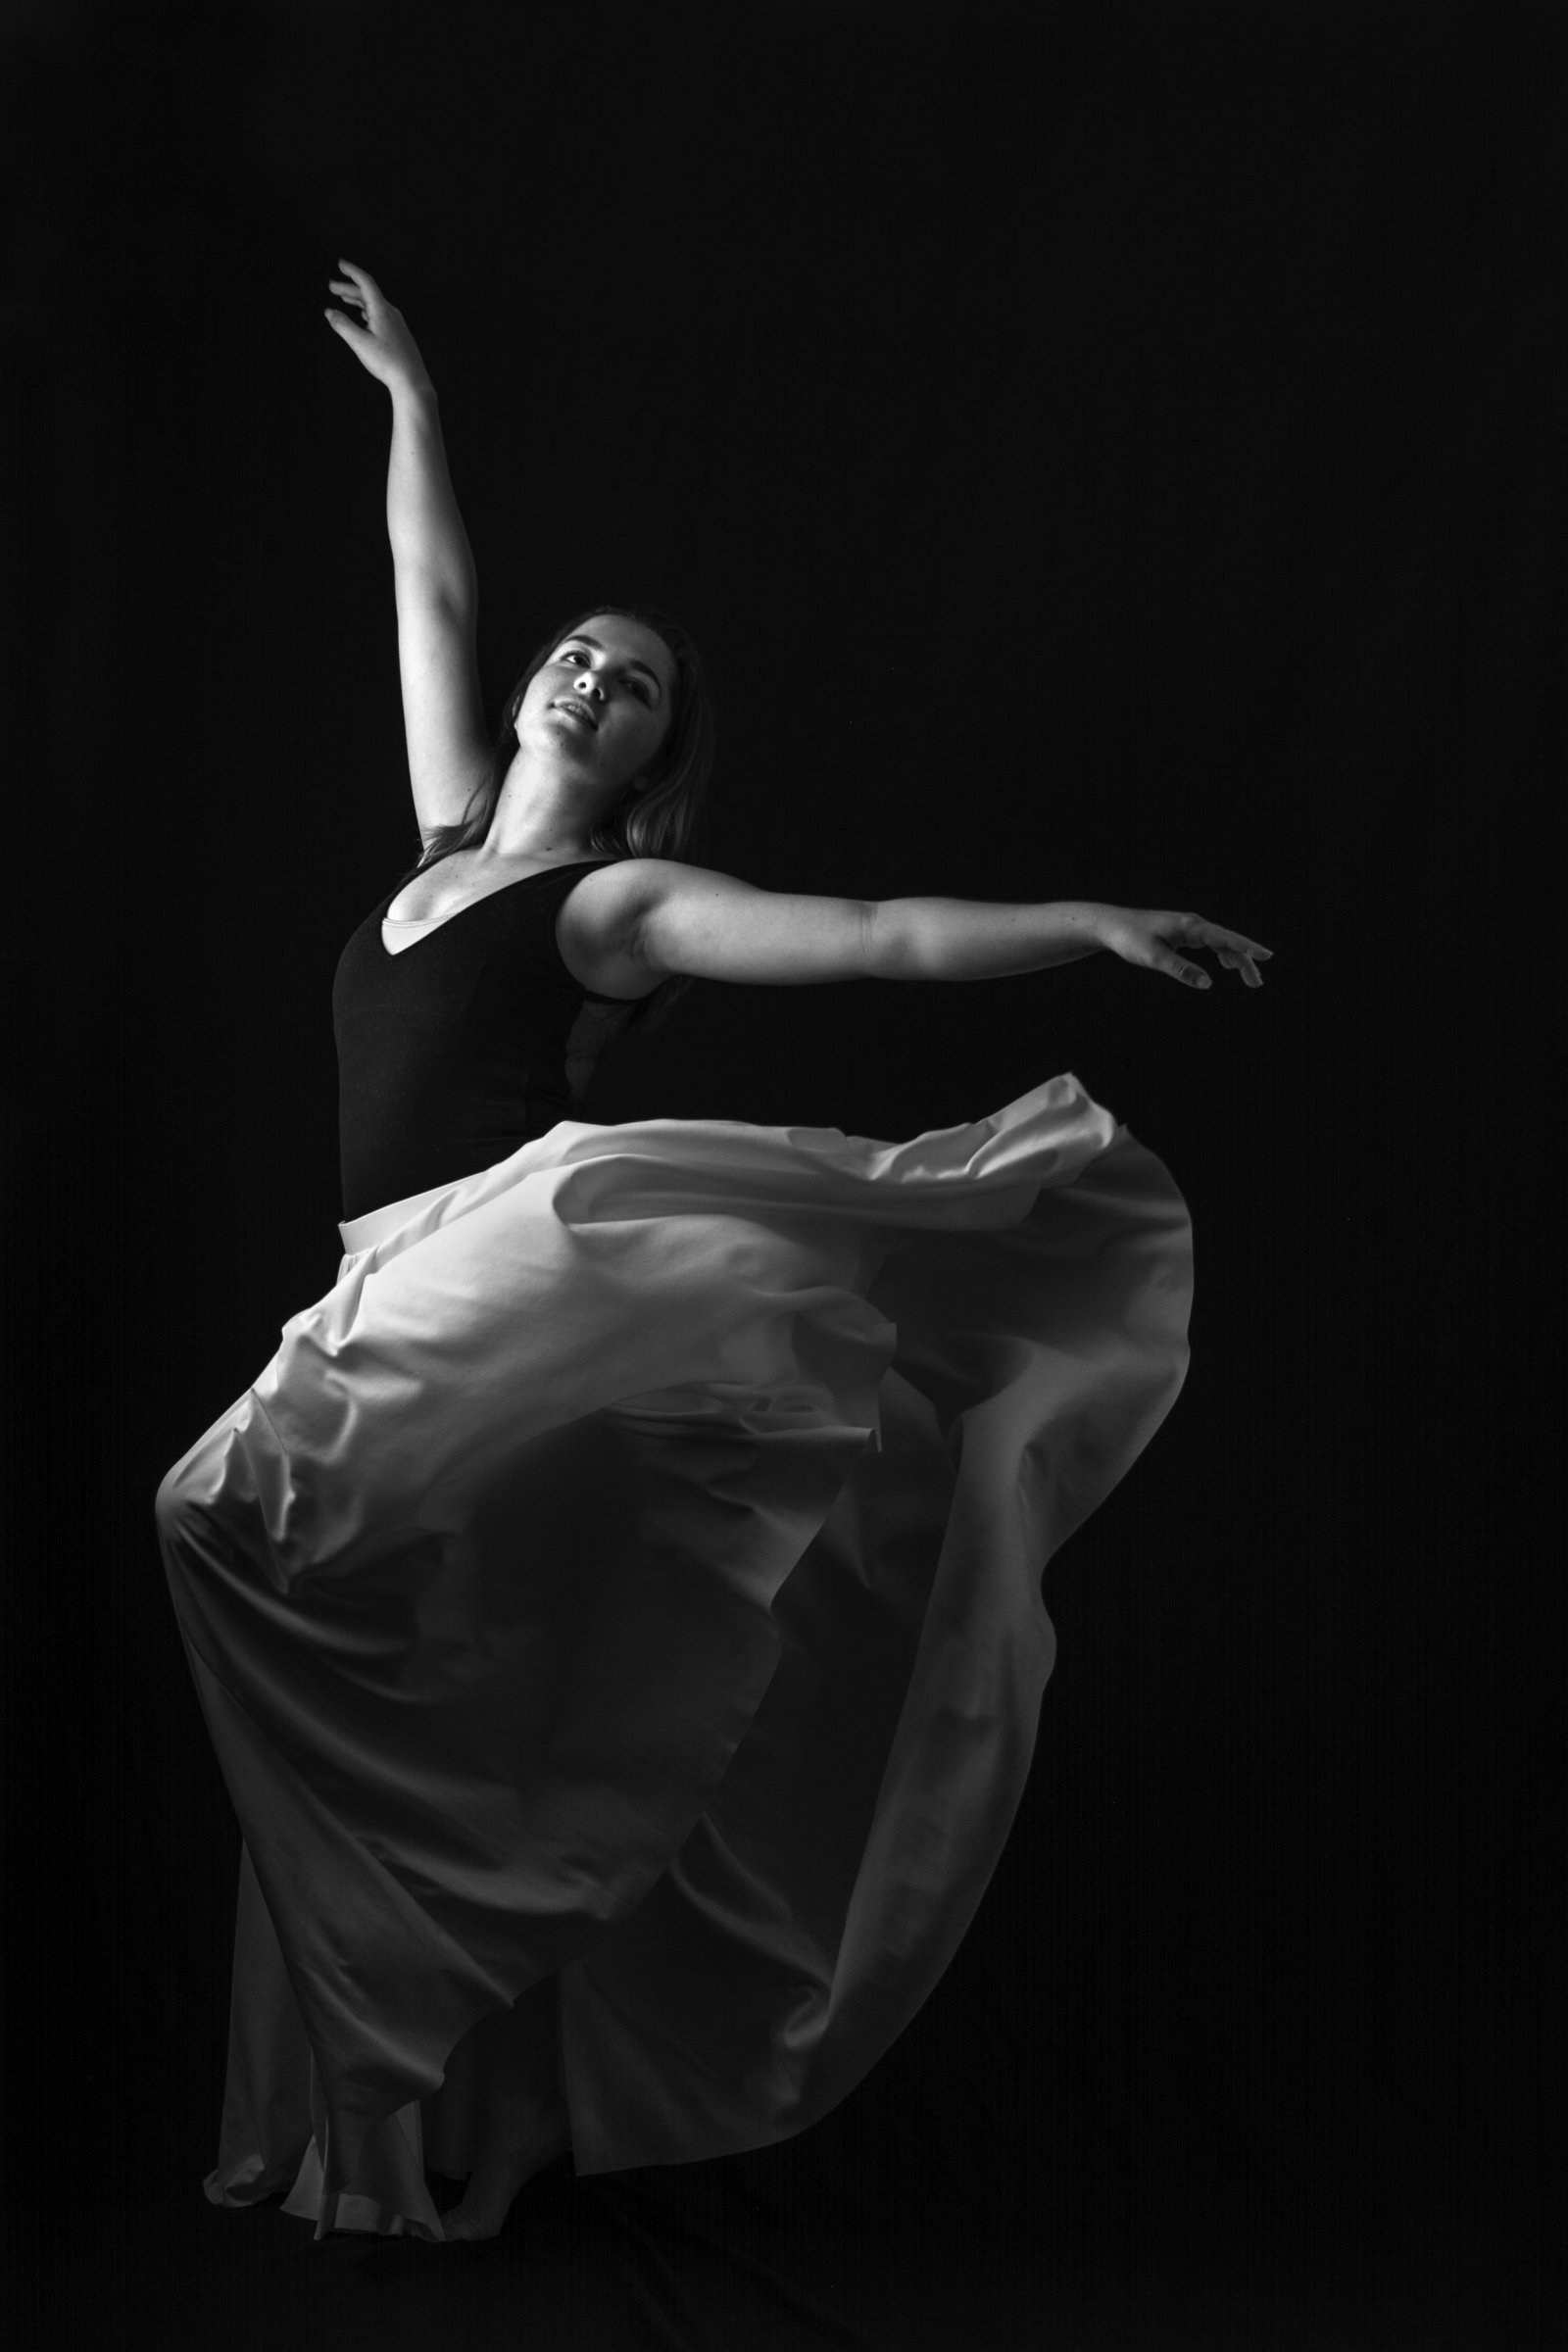 Megan ballet in home studio bk&wh